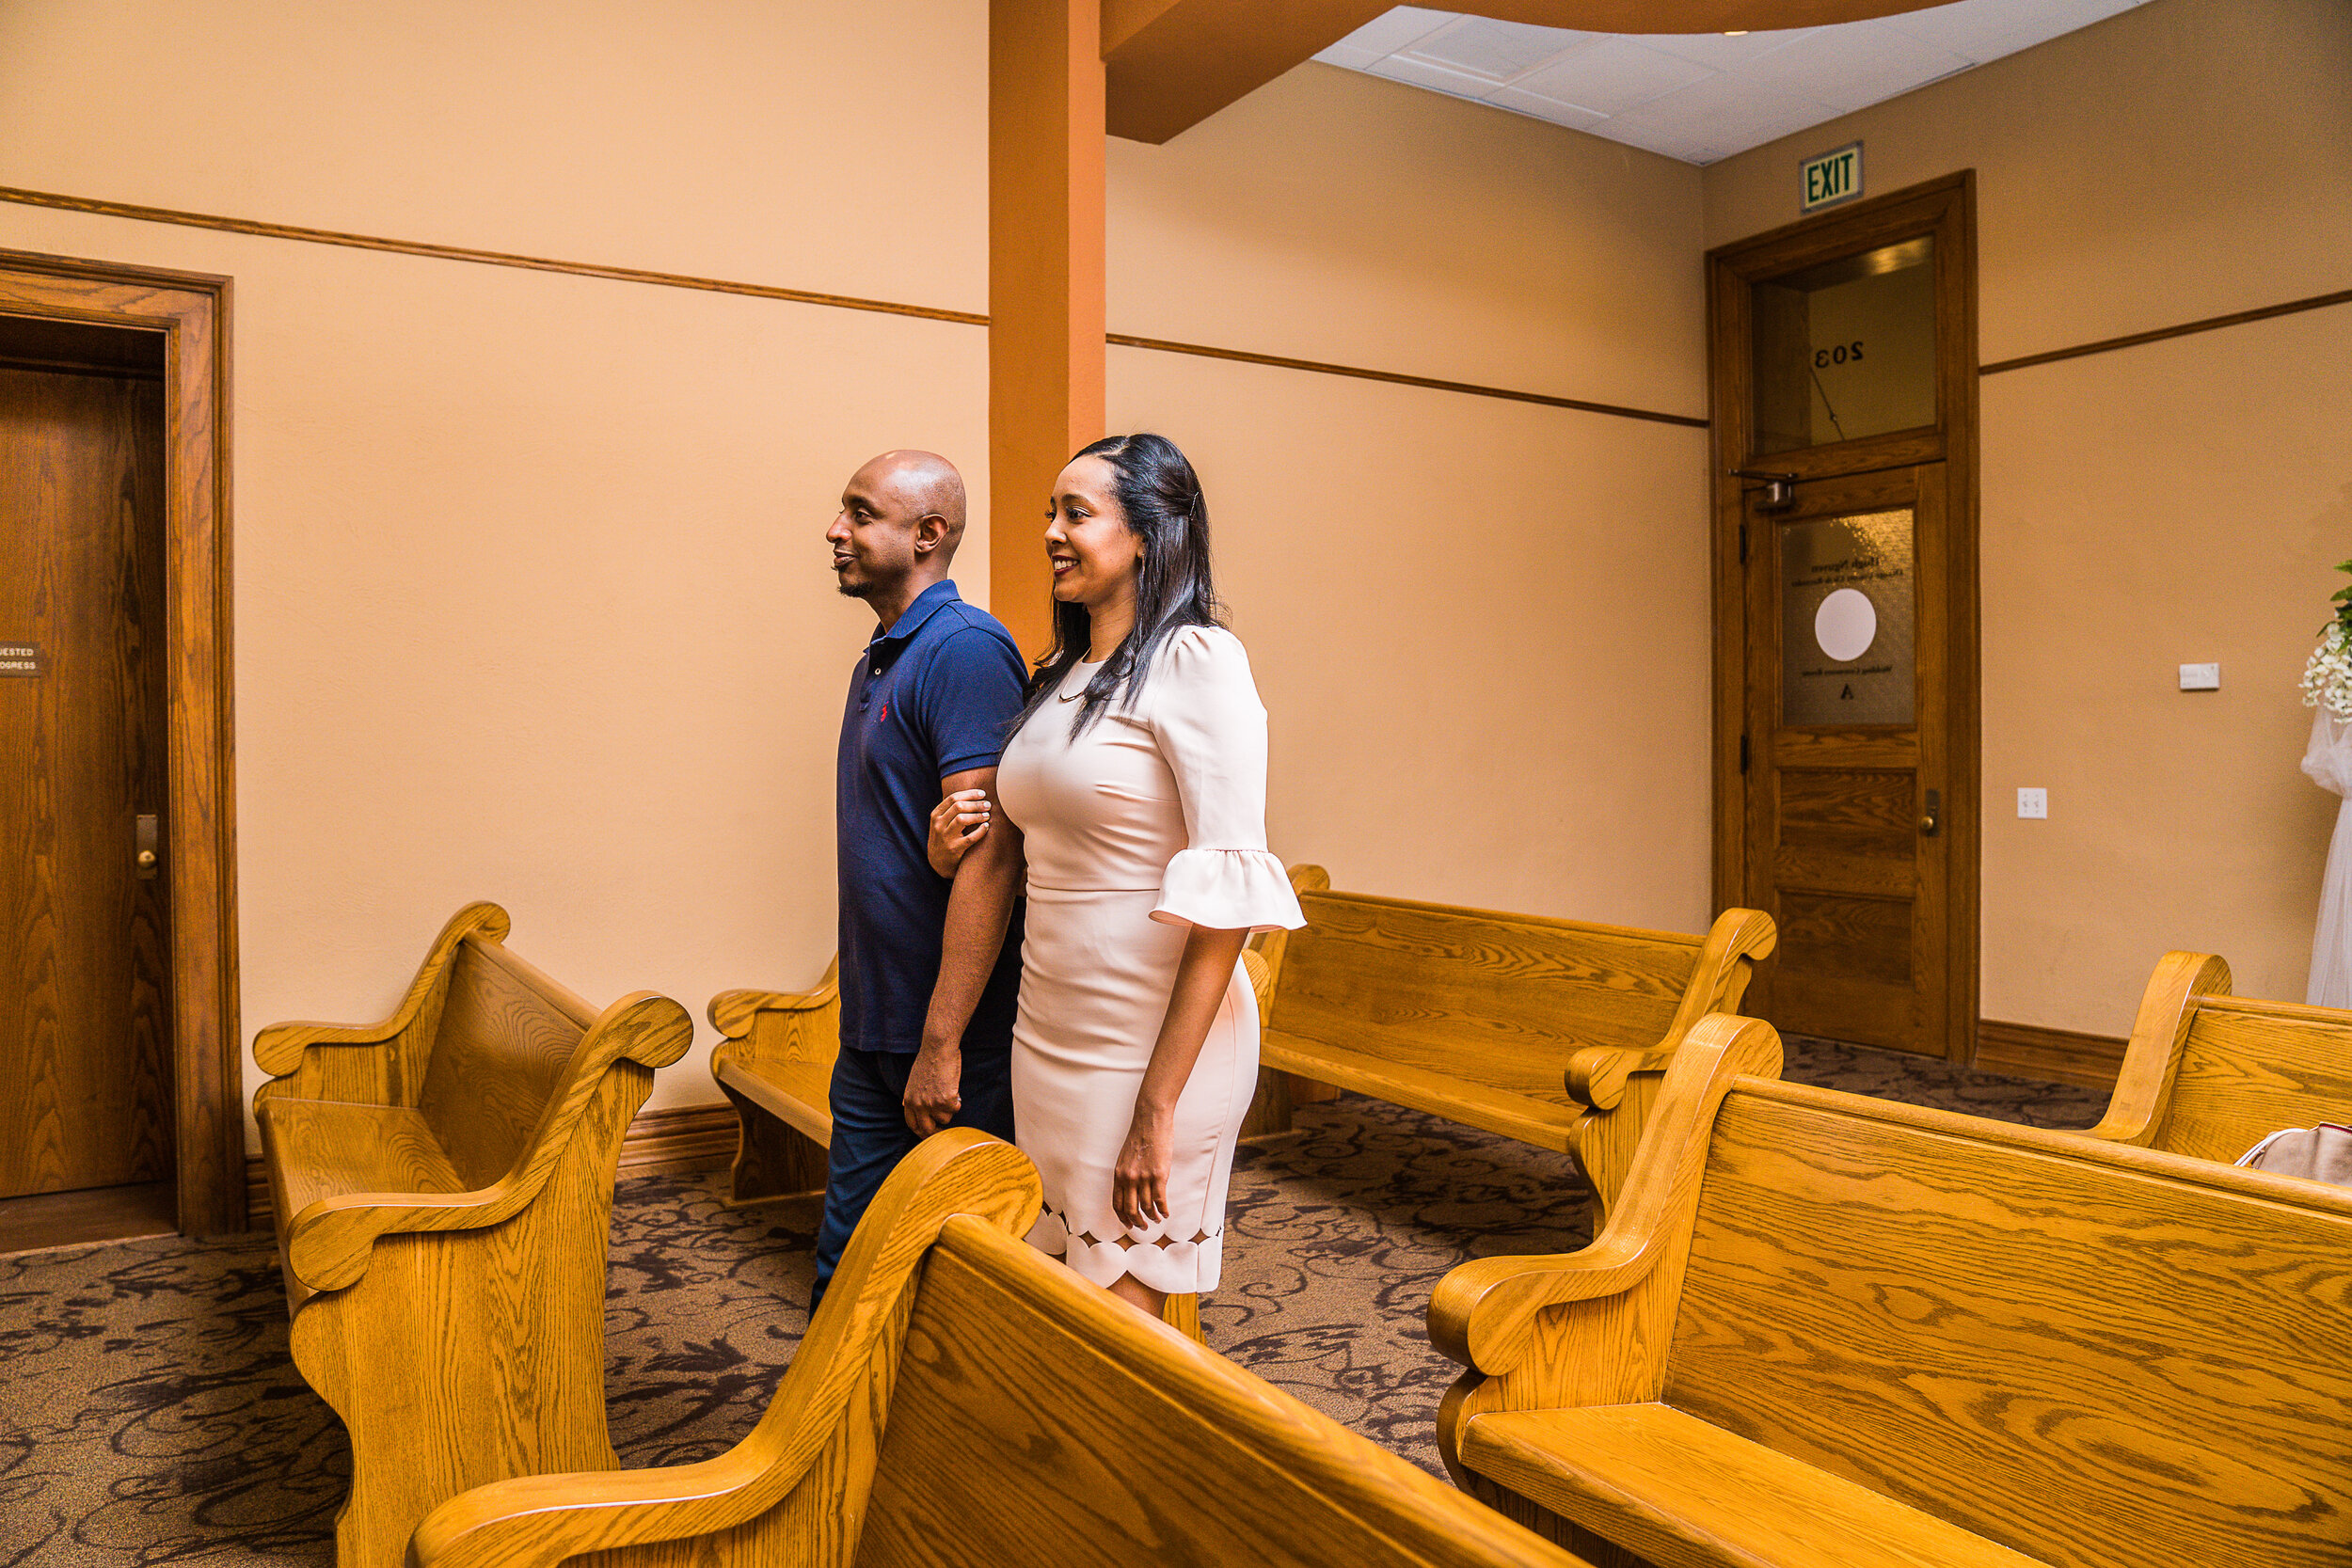 sewit-elopement-orange-county-santa-ana-courthouse-3-3.jpg